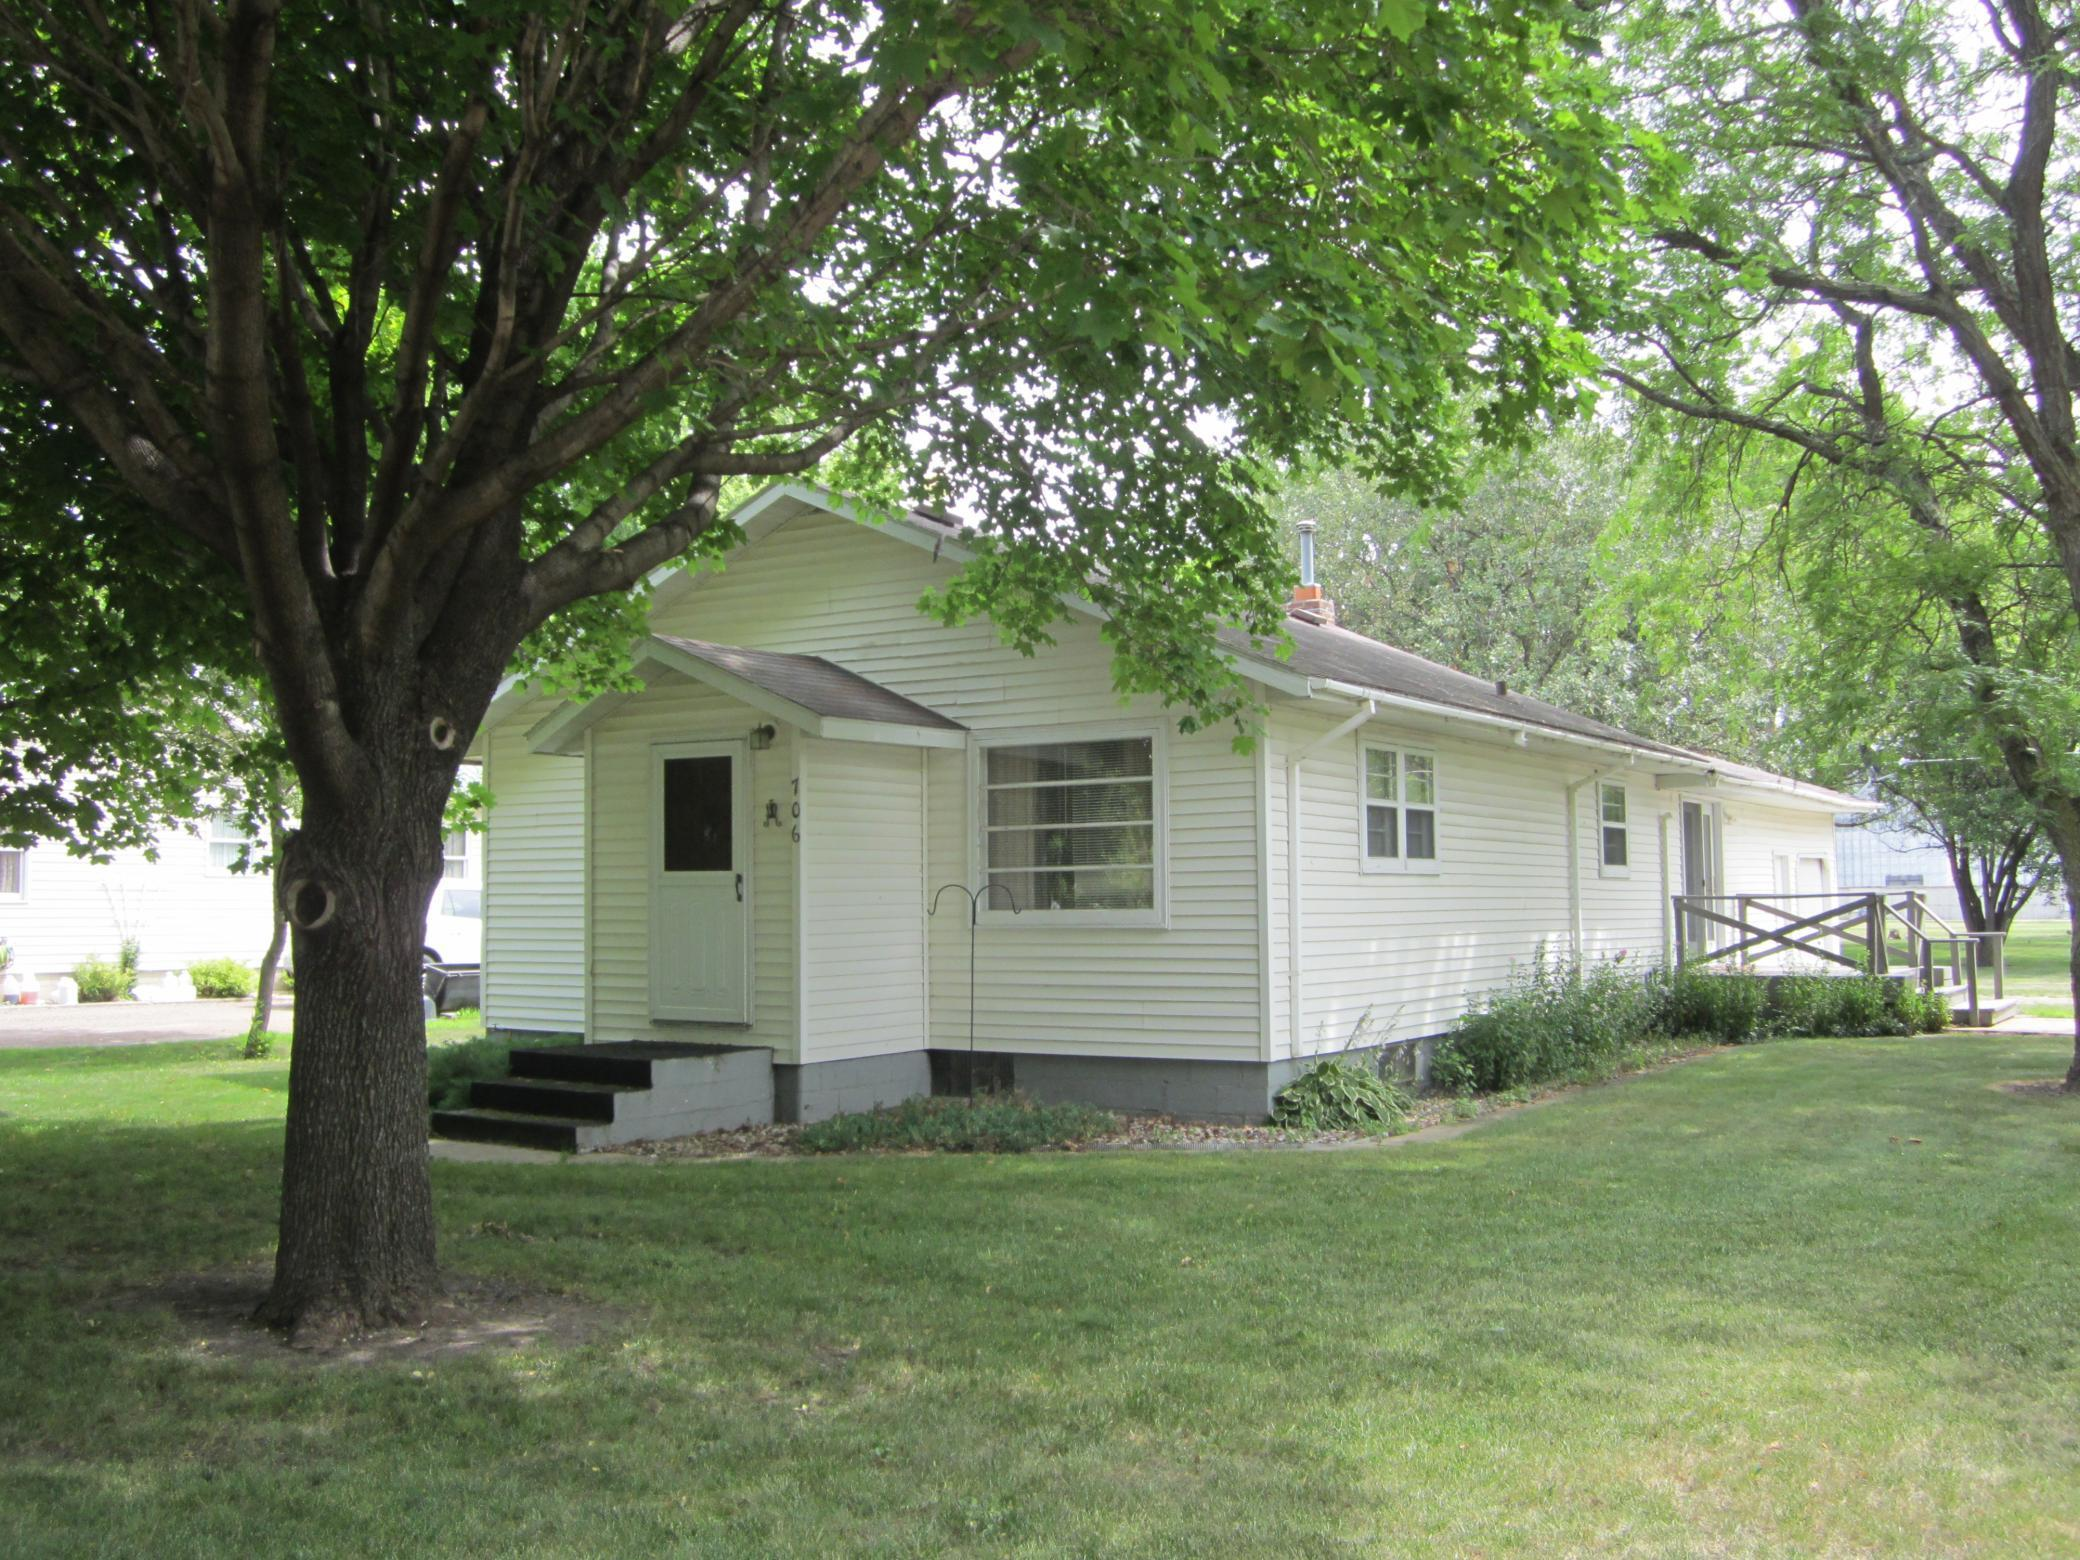 706 13th Street Property Photo - Clarkfield, MN real estate listing